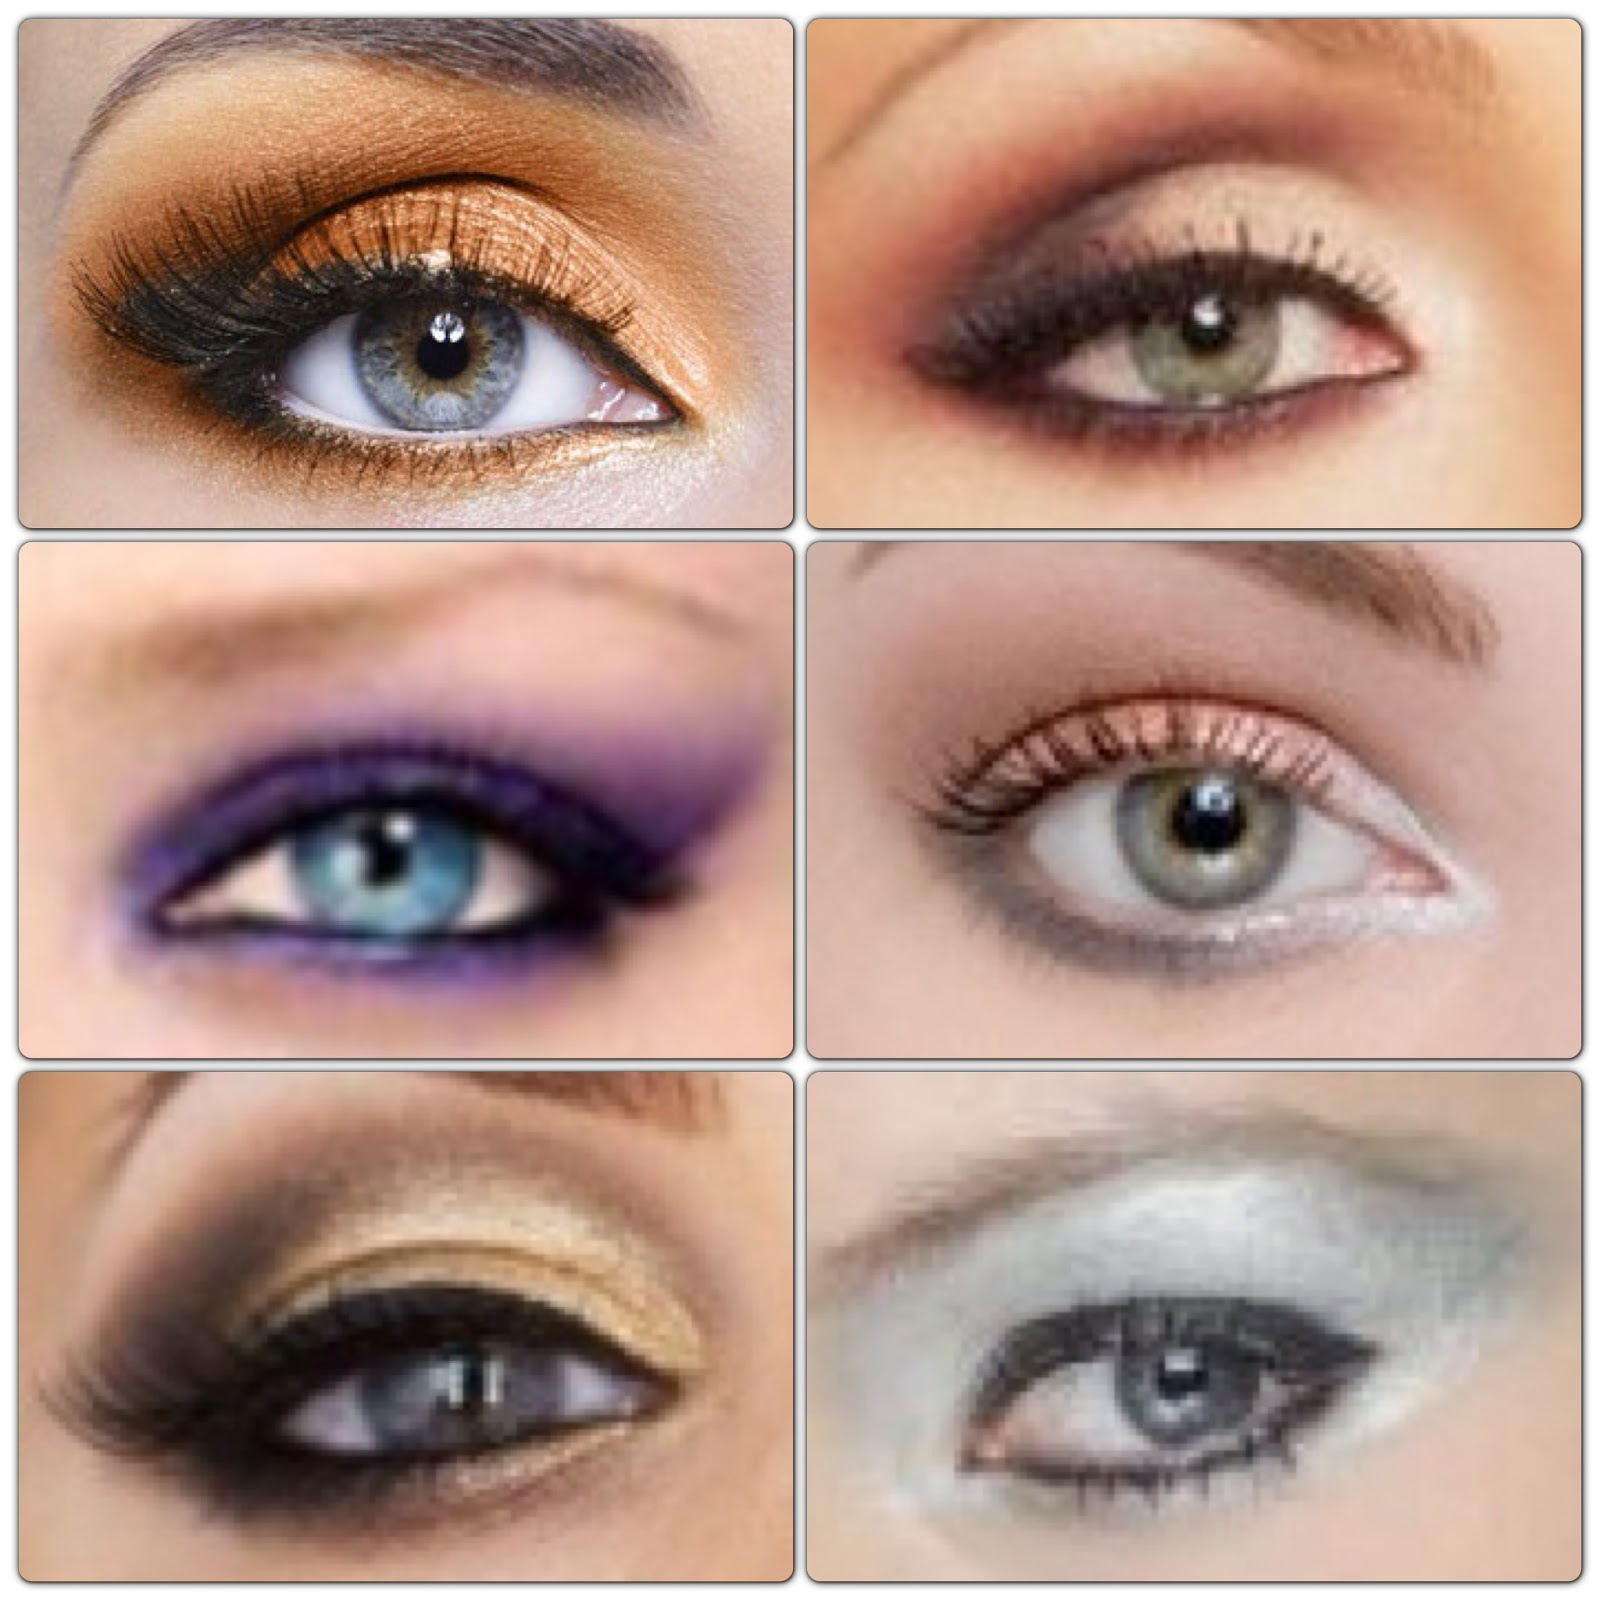 Different Shades Of Blue Eyes Pictures Different coloured eyes suit